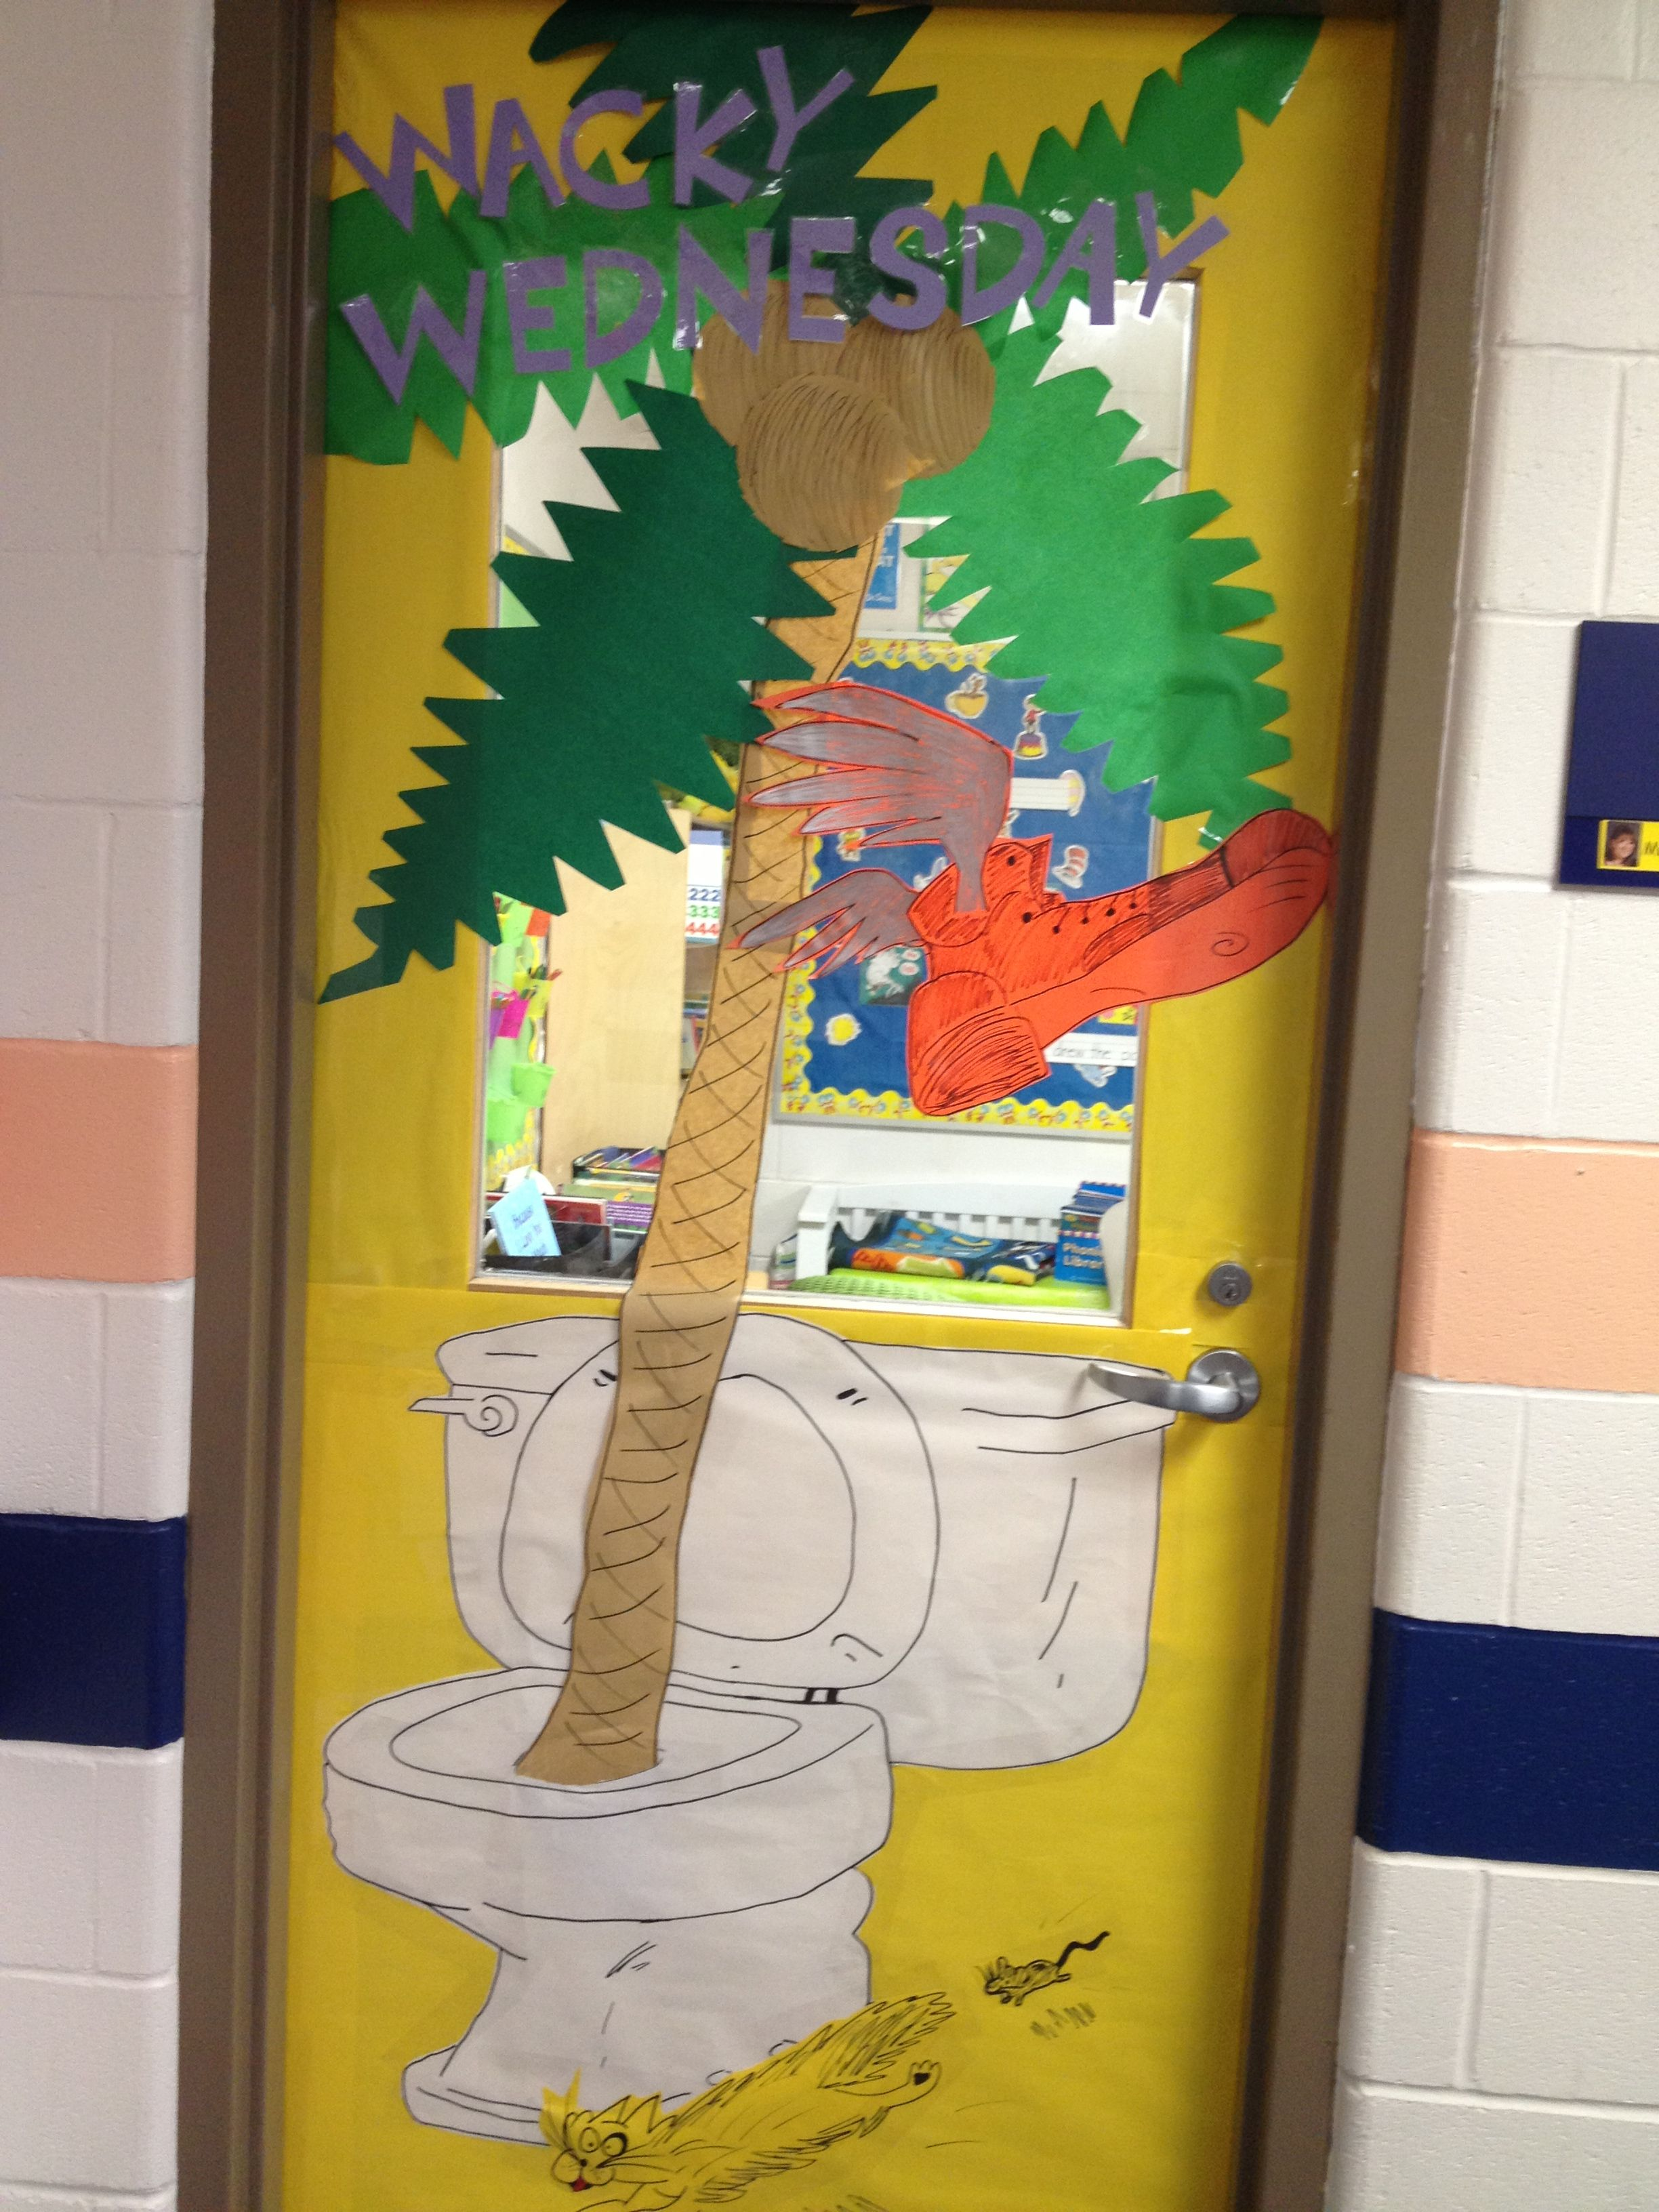 Wacky Wednesday Door Design For Our Dr Seuss Door Contest At School Dancamacho Design